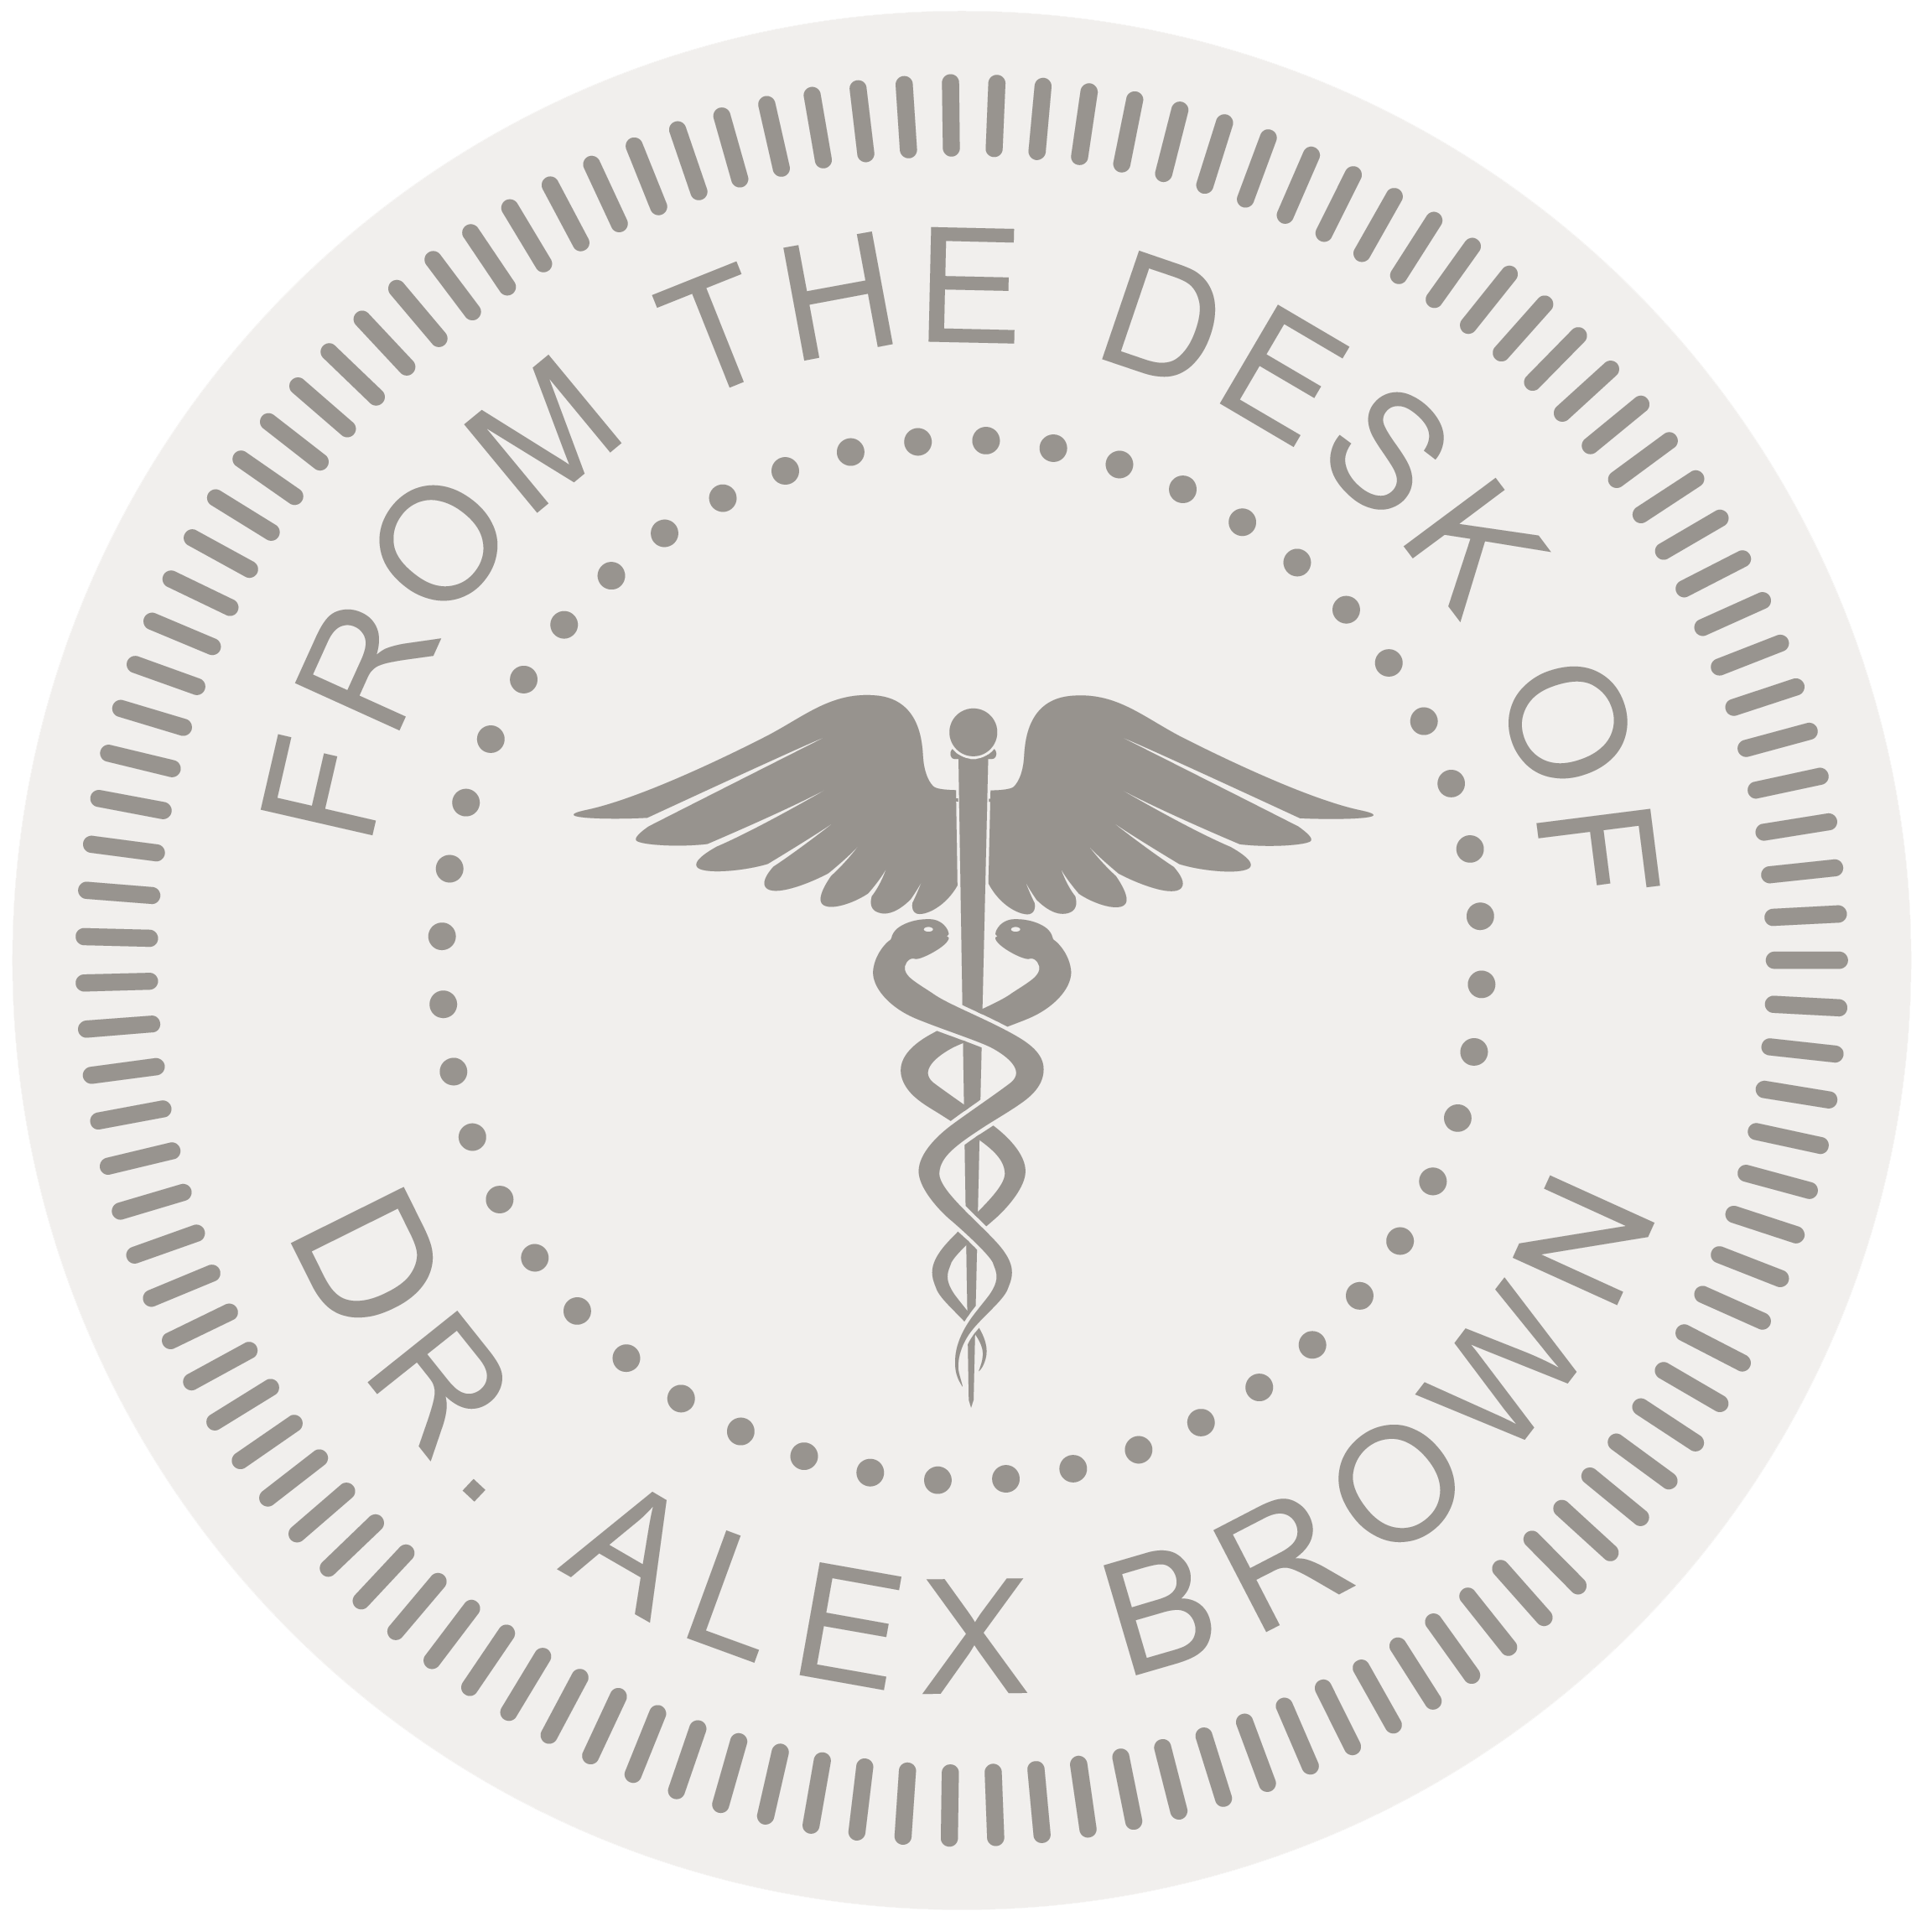 Round From The Desk of Dr. Alex Brown Stamp